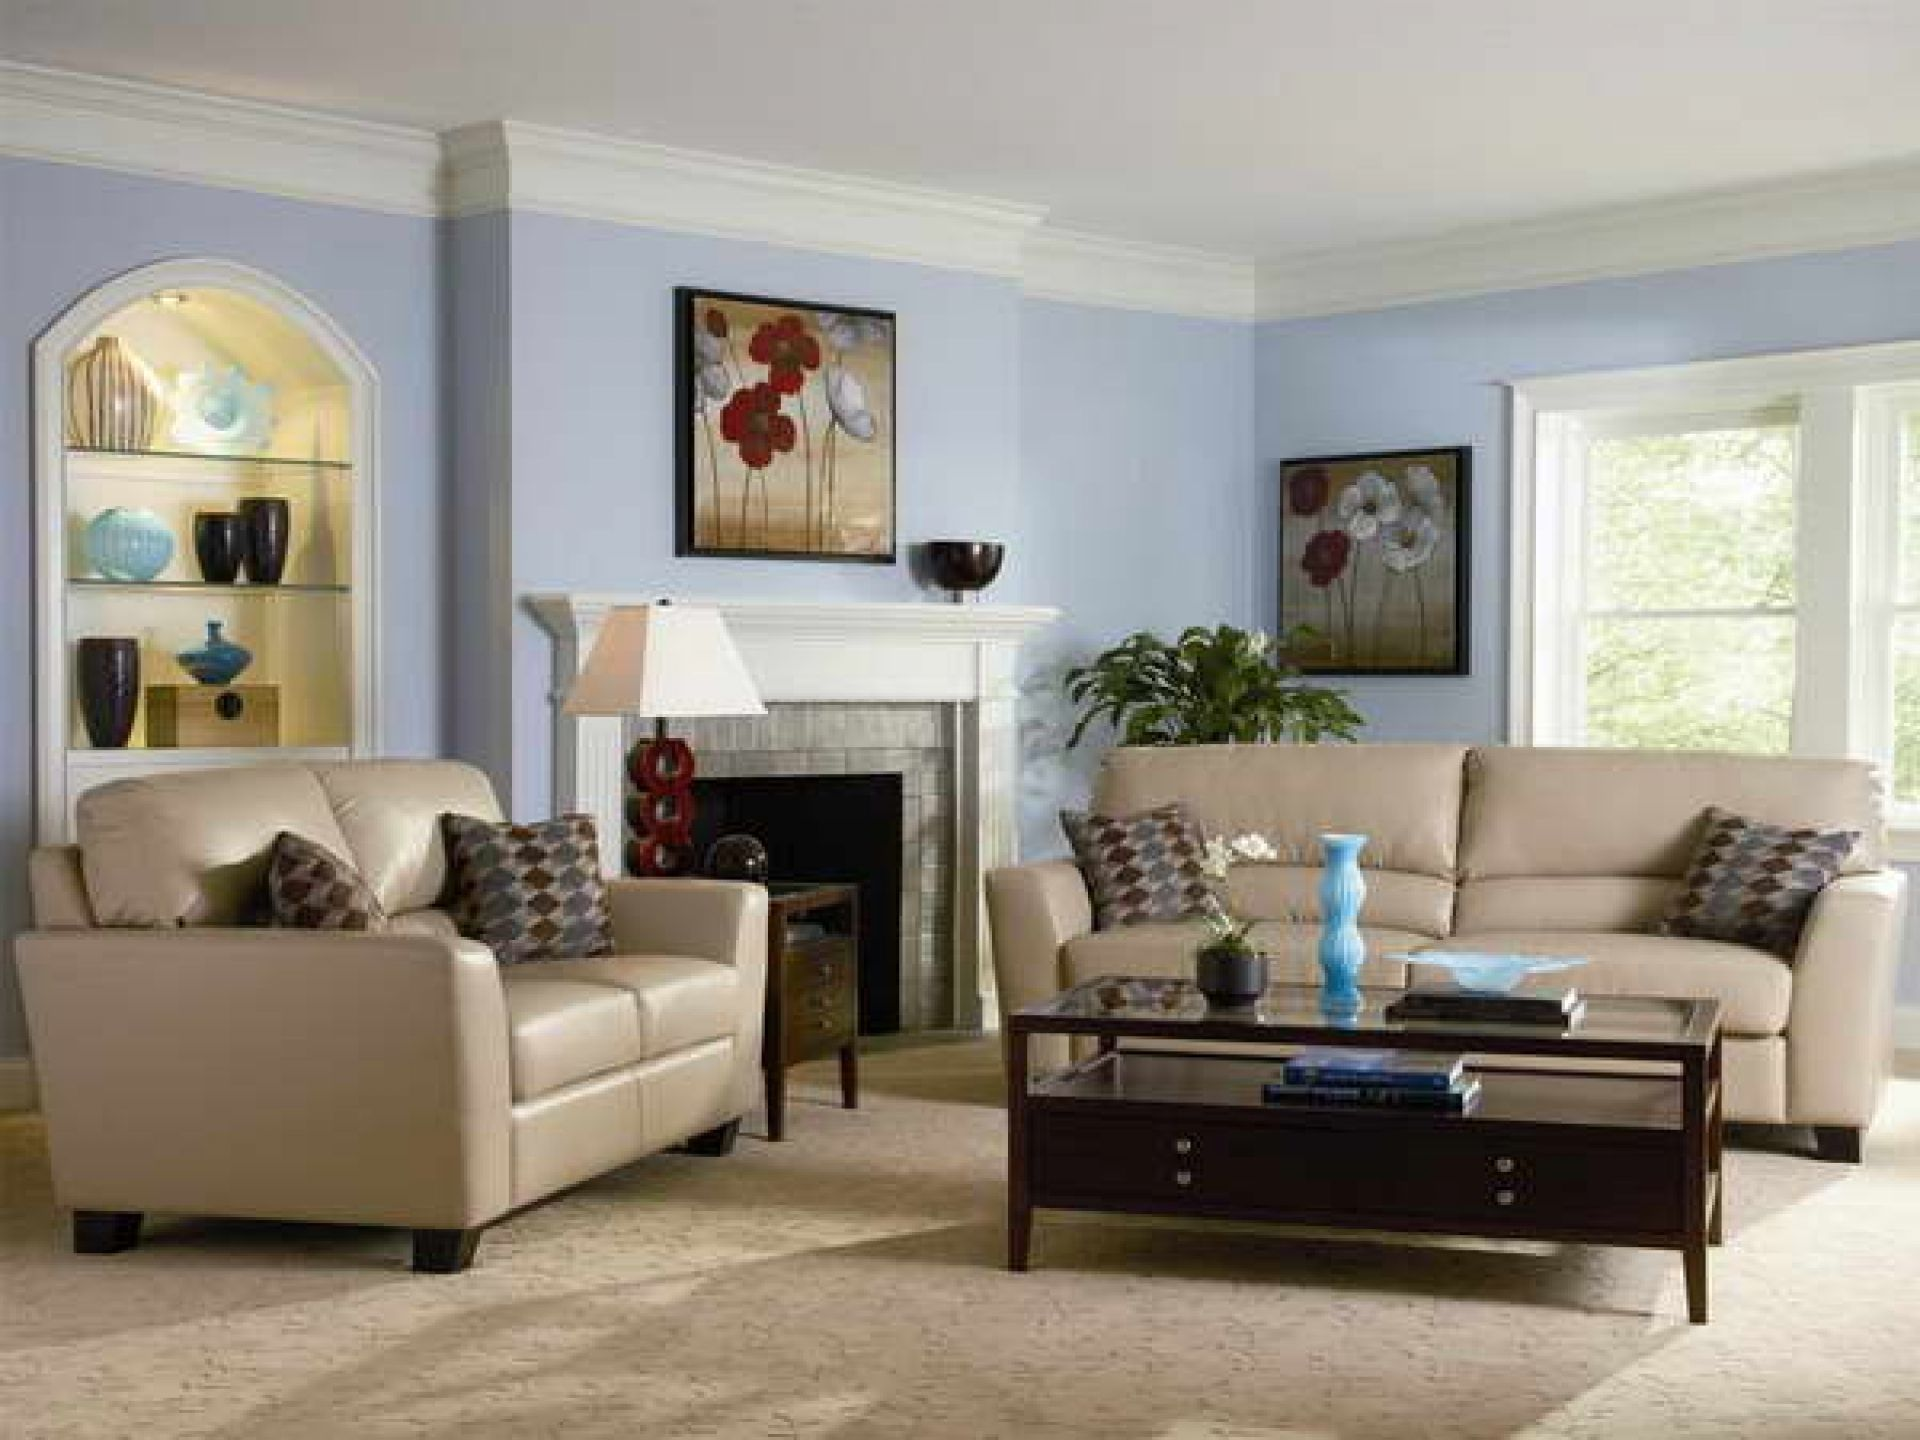 Living room ideas tan sofa - Small Living Room Decorating Ideas Photos Tan Blue Blue Living